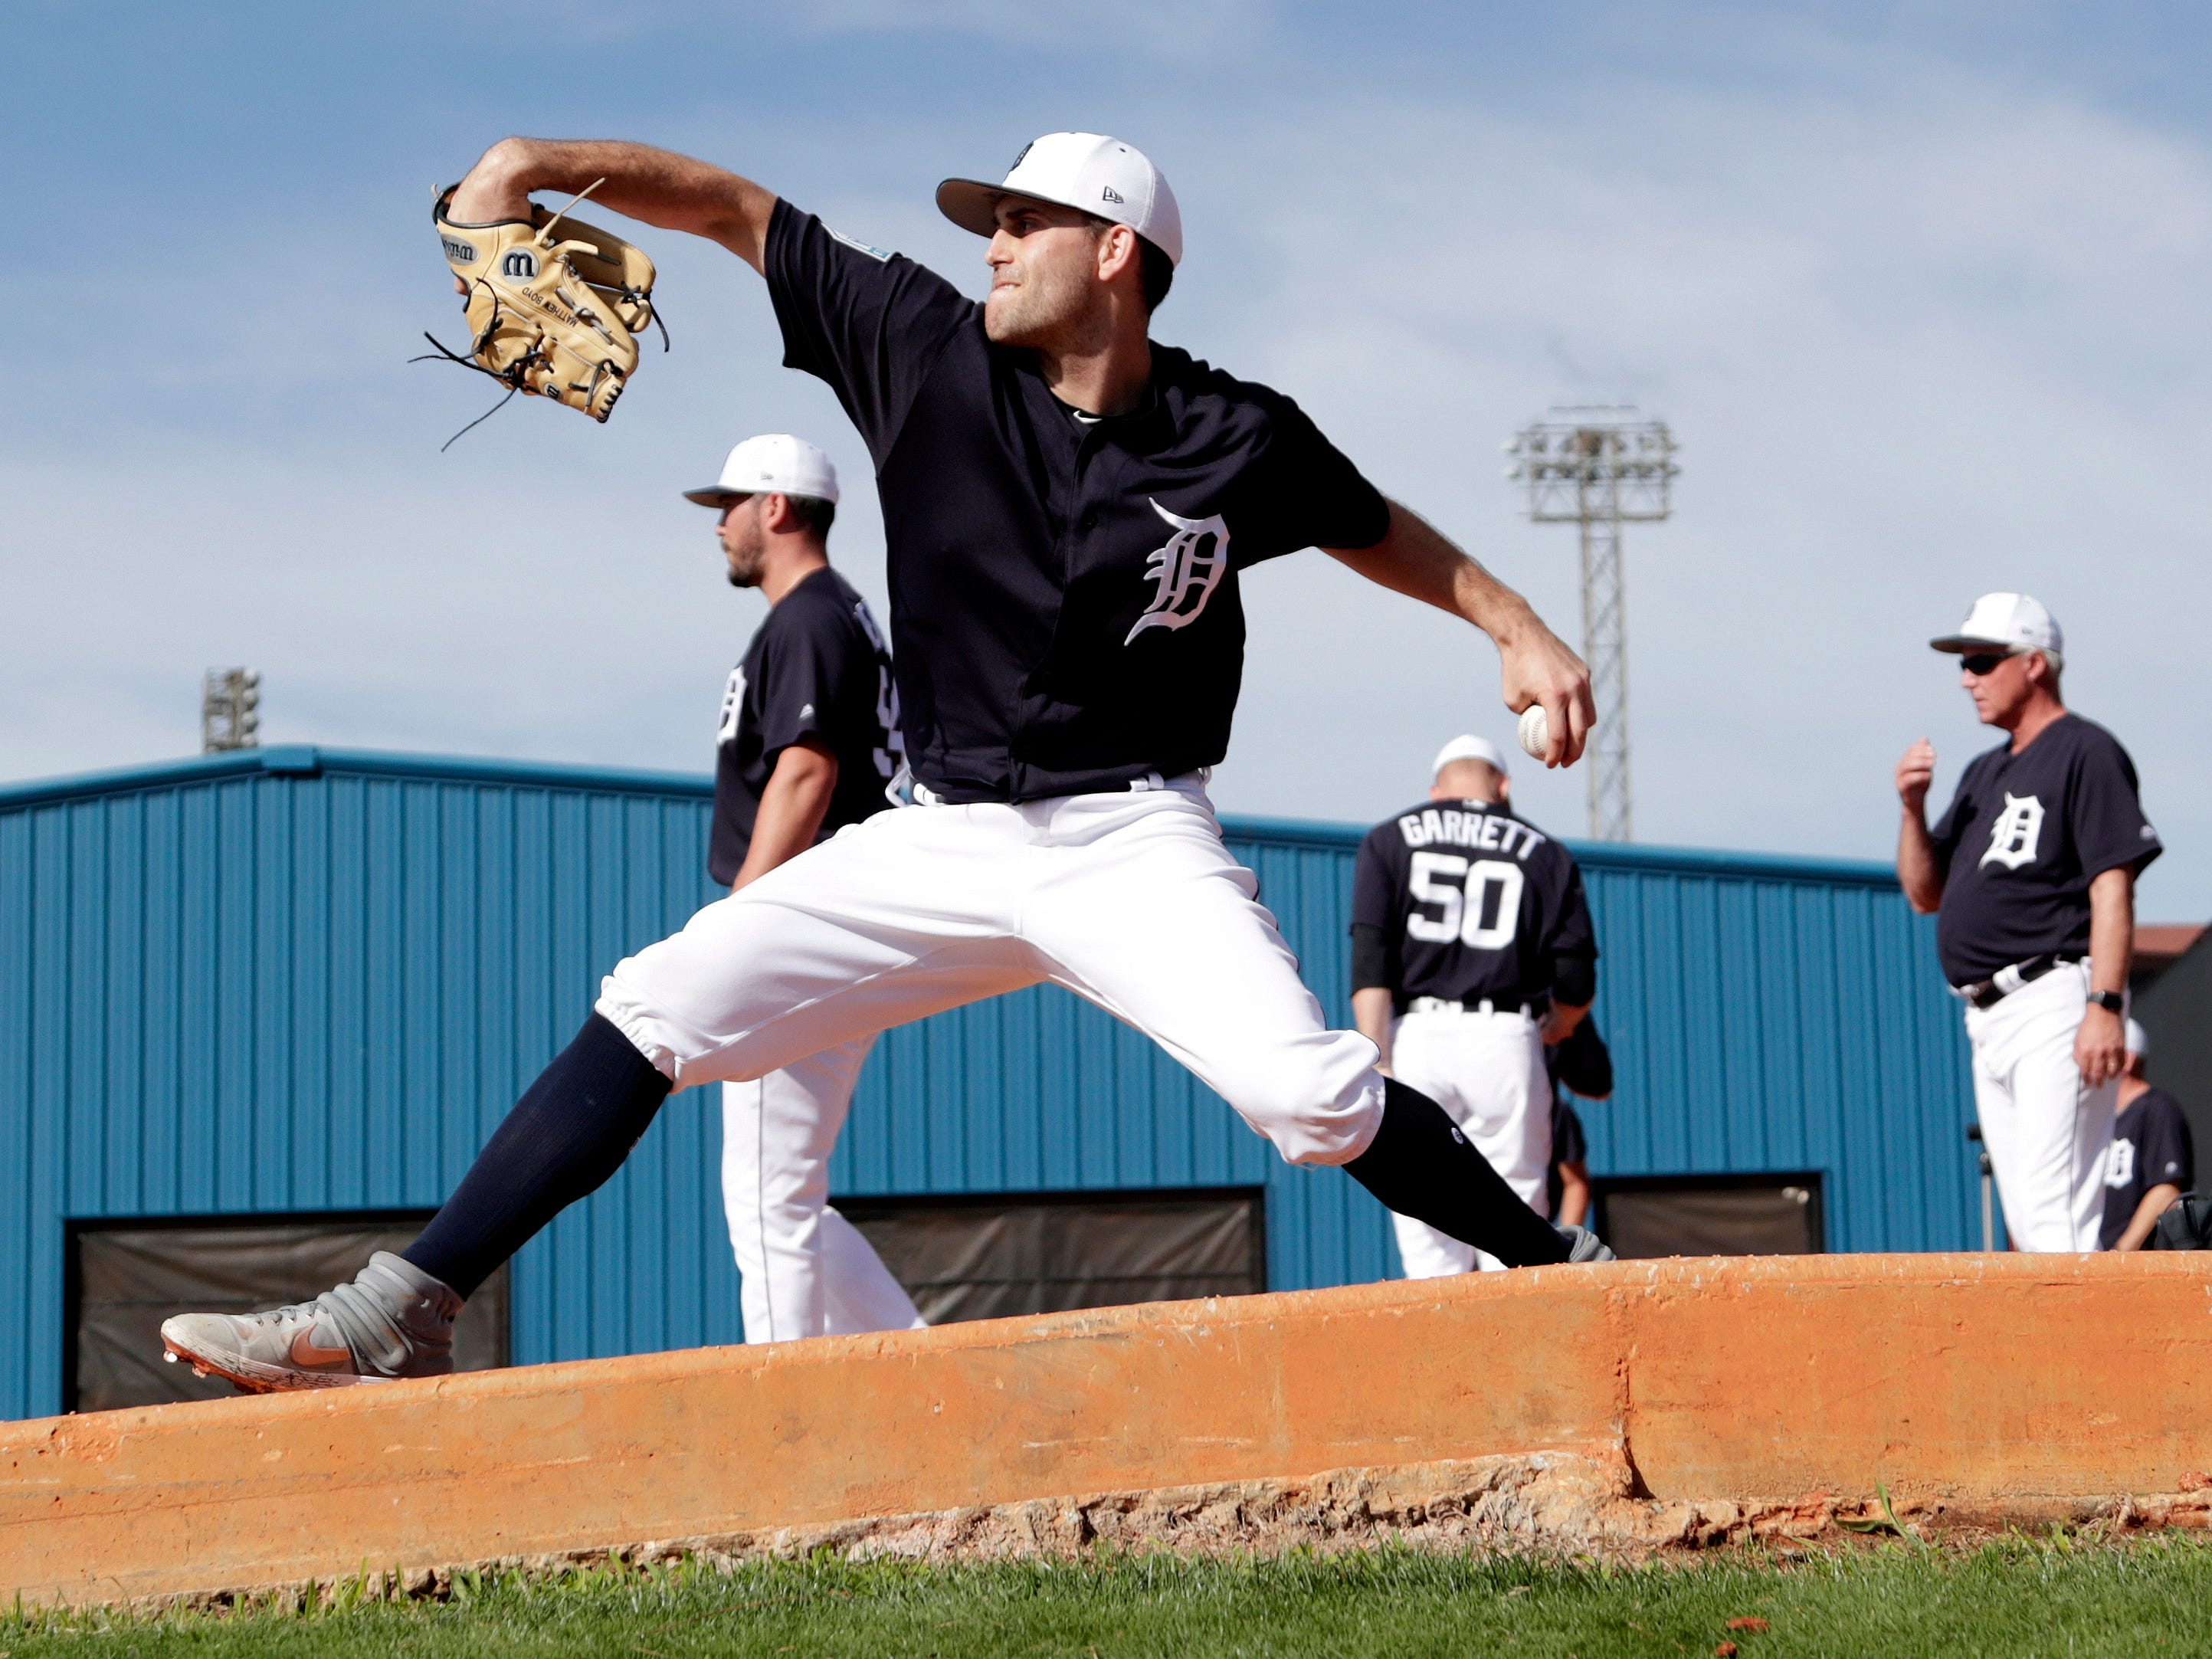 Detroit Tigers starting pitcher Matthew Boyd throws in the bullpen at the Detroit Tigers spring training baseball facility, Friday, Feb. 15, 2019, in Lakeland, Fla.